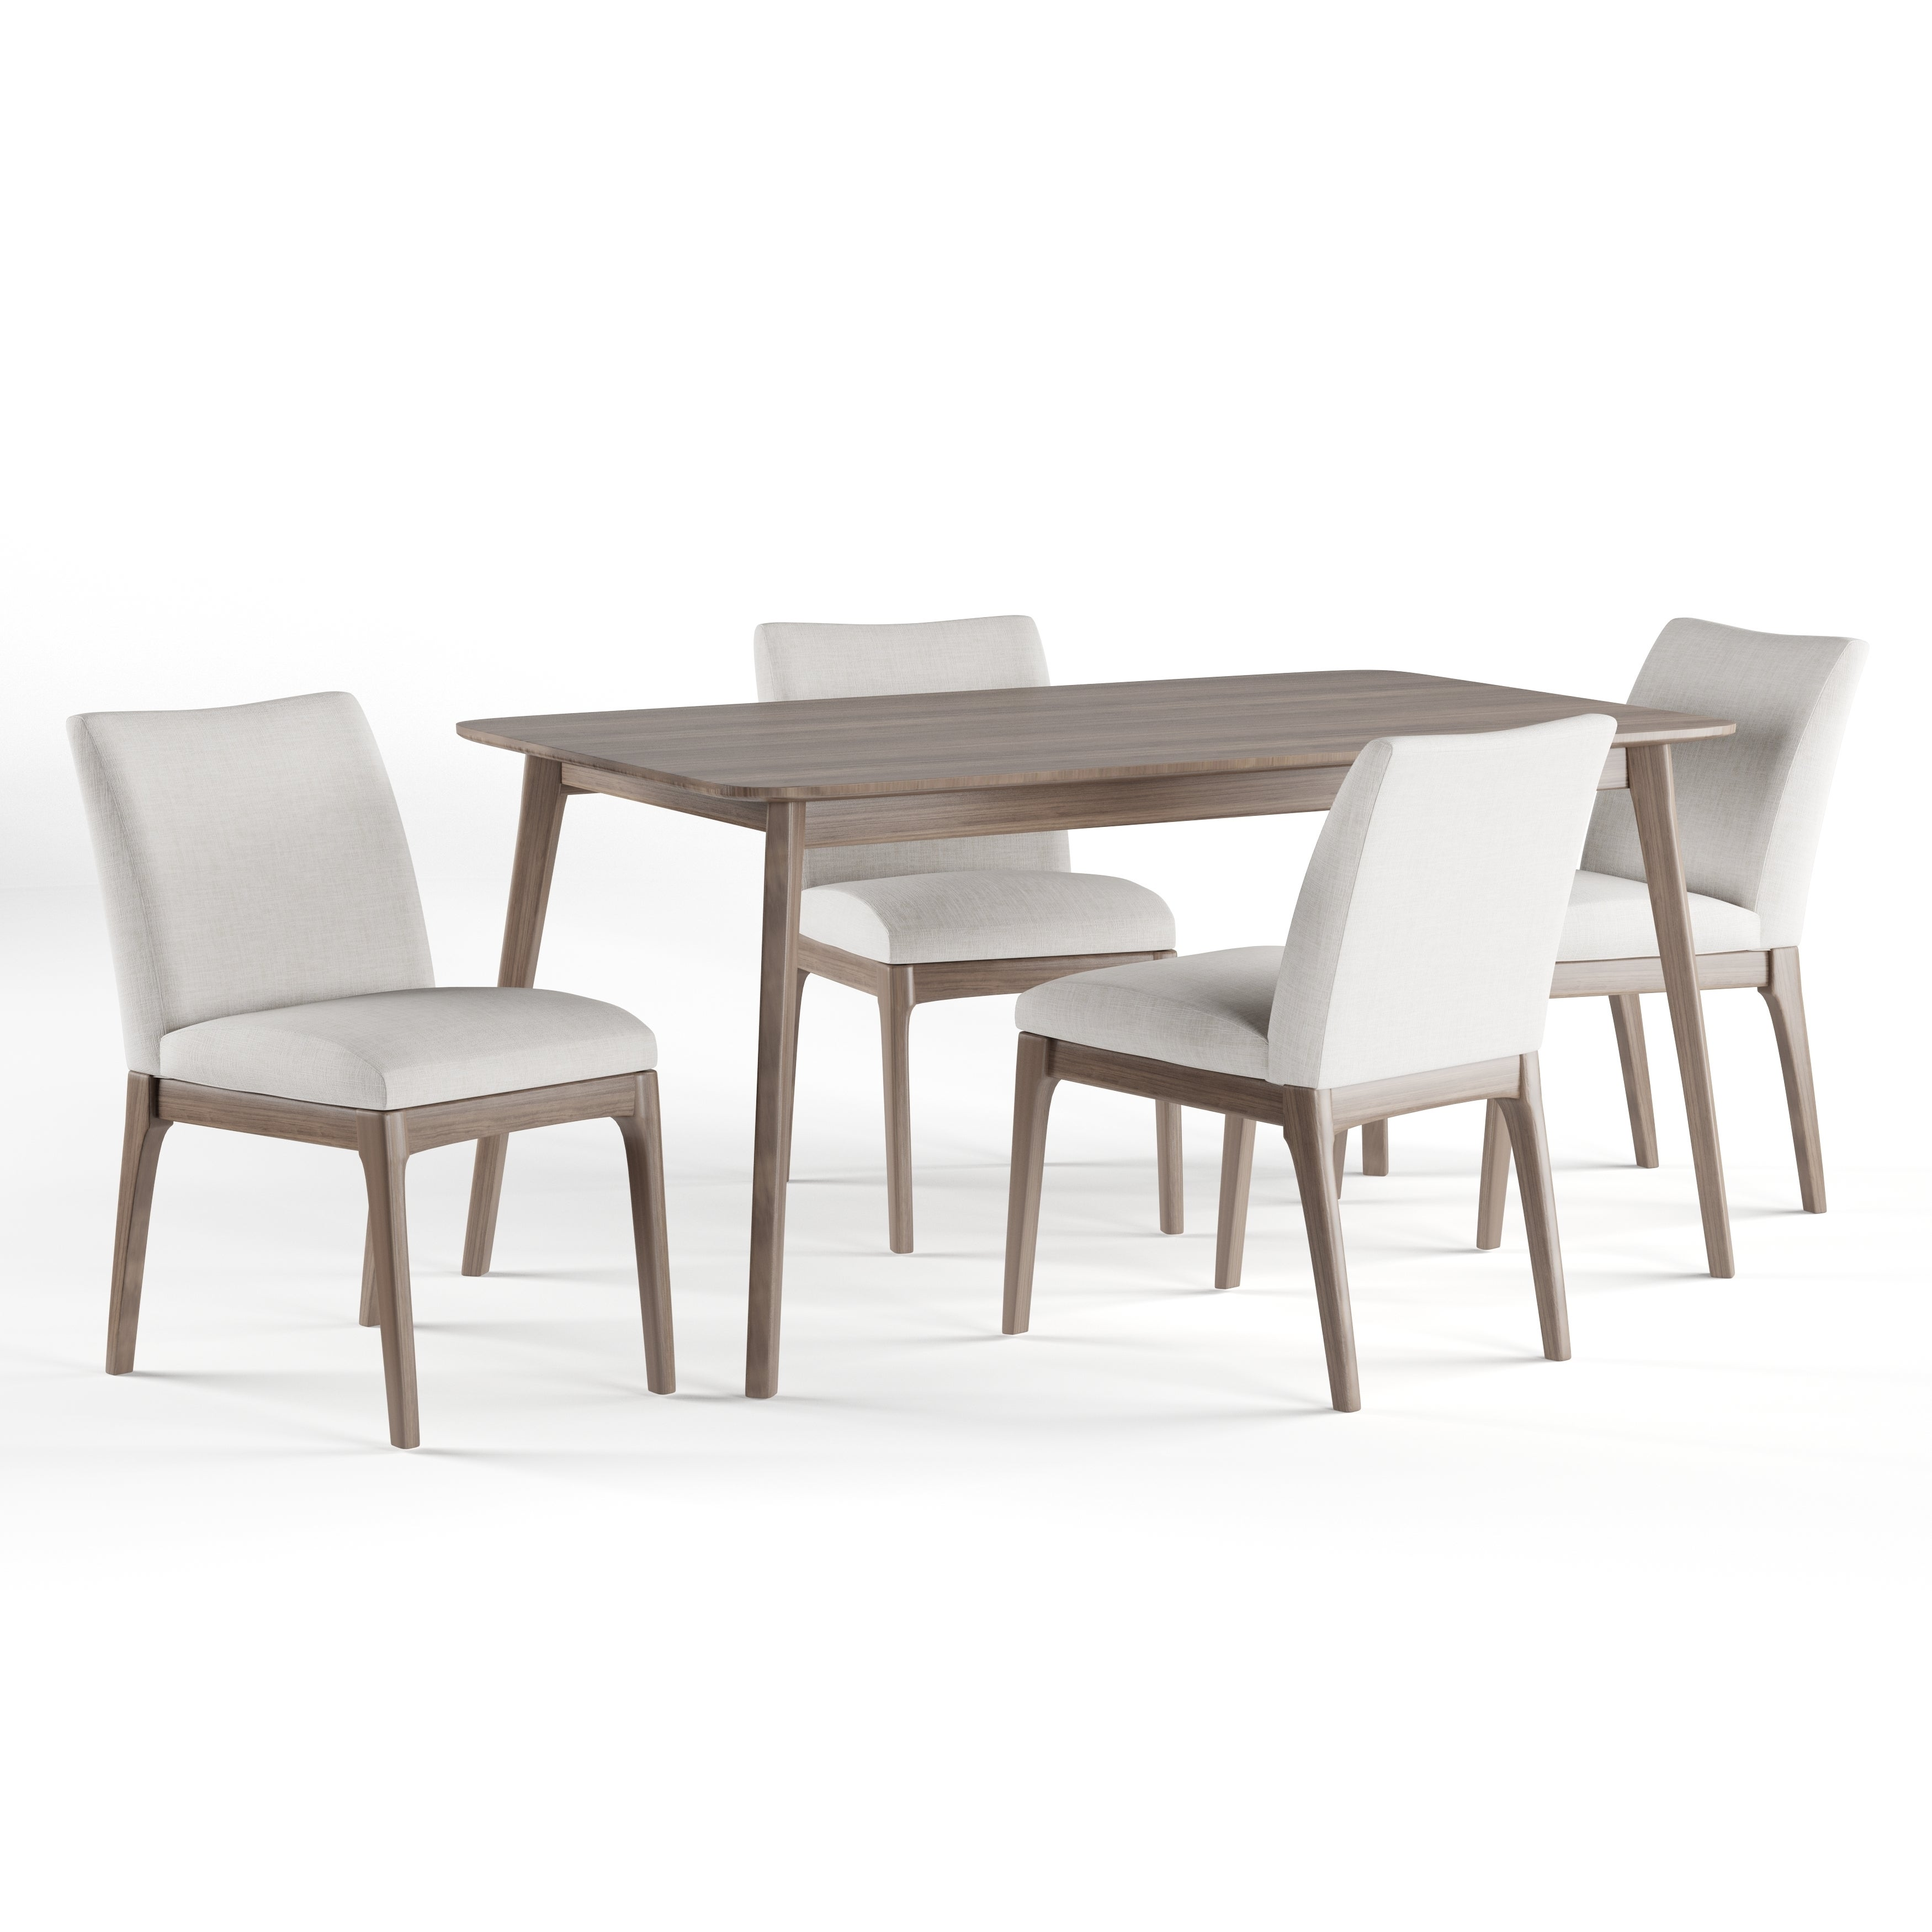 3cea9cf8f Shop Carson Carrington Kotka Mid-century 5-piece Dining Set - On Sale -  Free Shipping Today - Overstock - 19473329